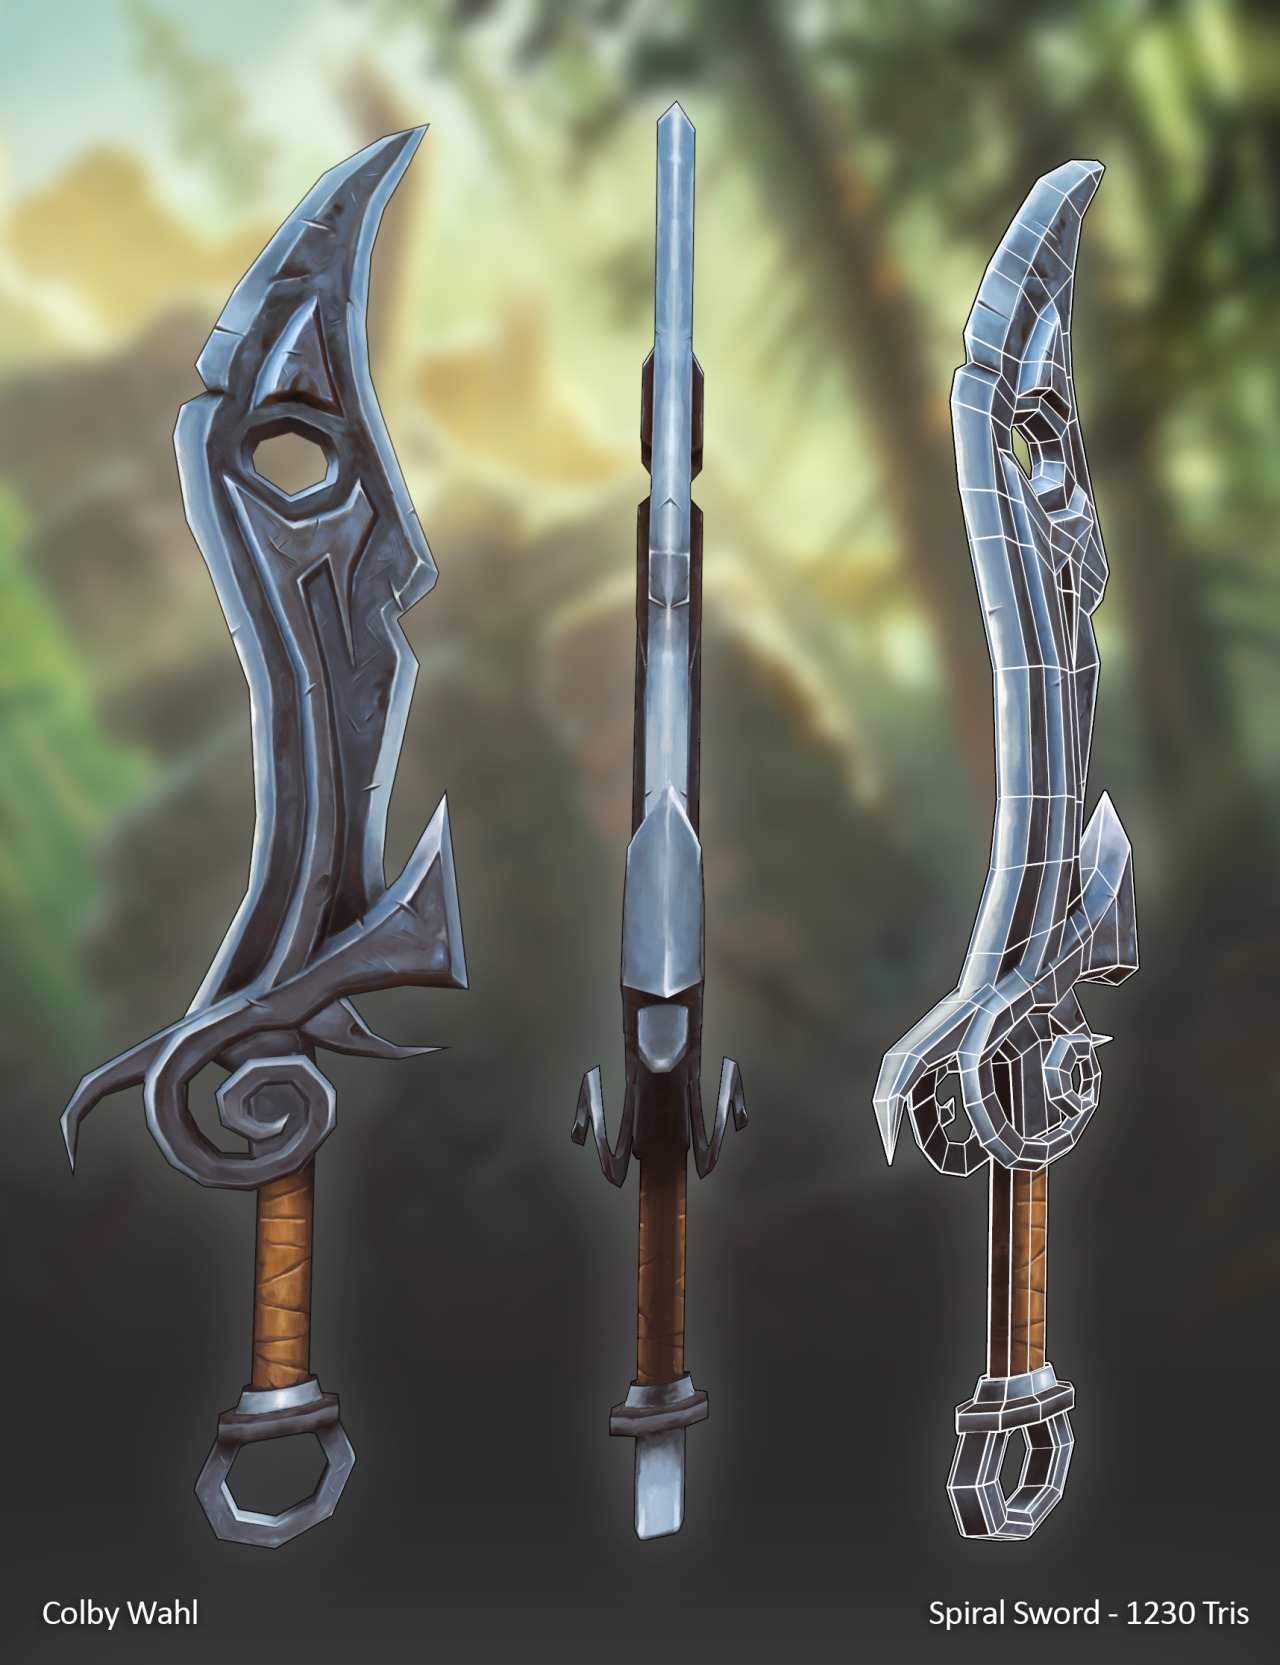 colbywahl:  World Of Warcraft themed Spiral Sword, Modeled in Maya, Textured in Photoshop, Rendered in Marmoset, 1230 Tris